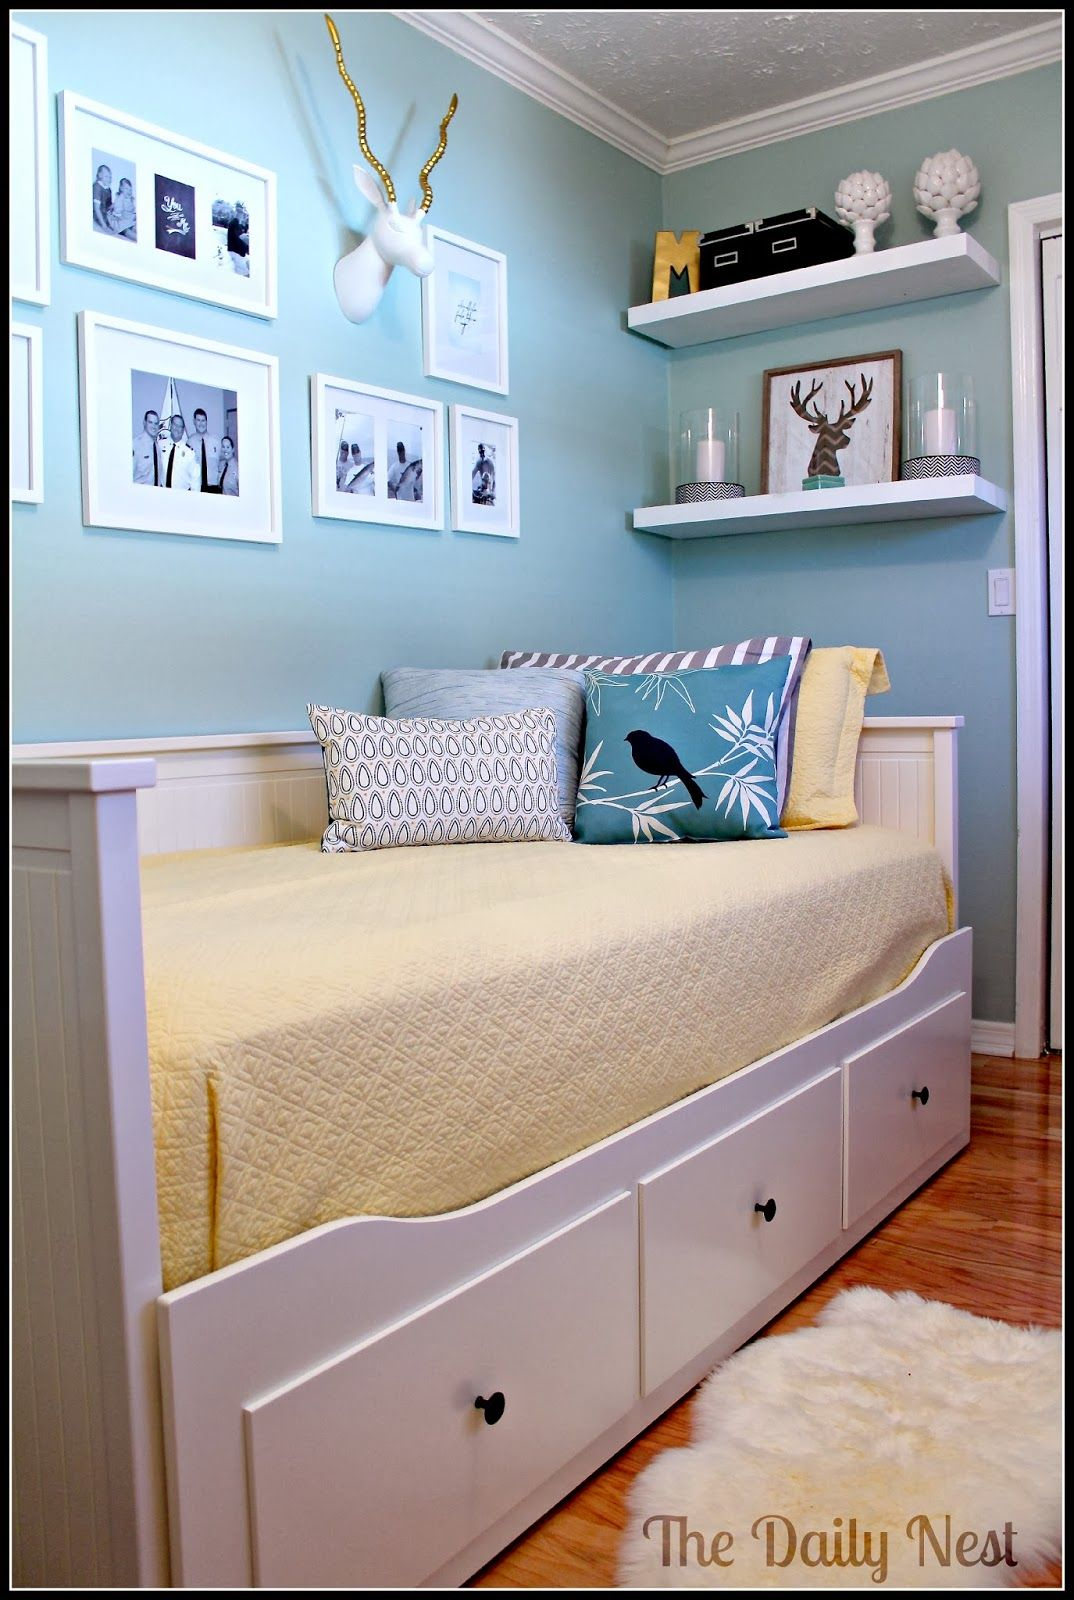 Ikea day beds hemnes home design ideas - Feature Friday The Daily Nest